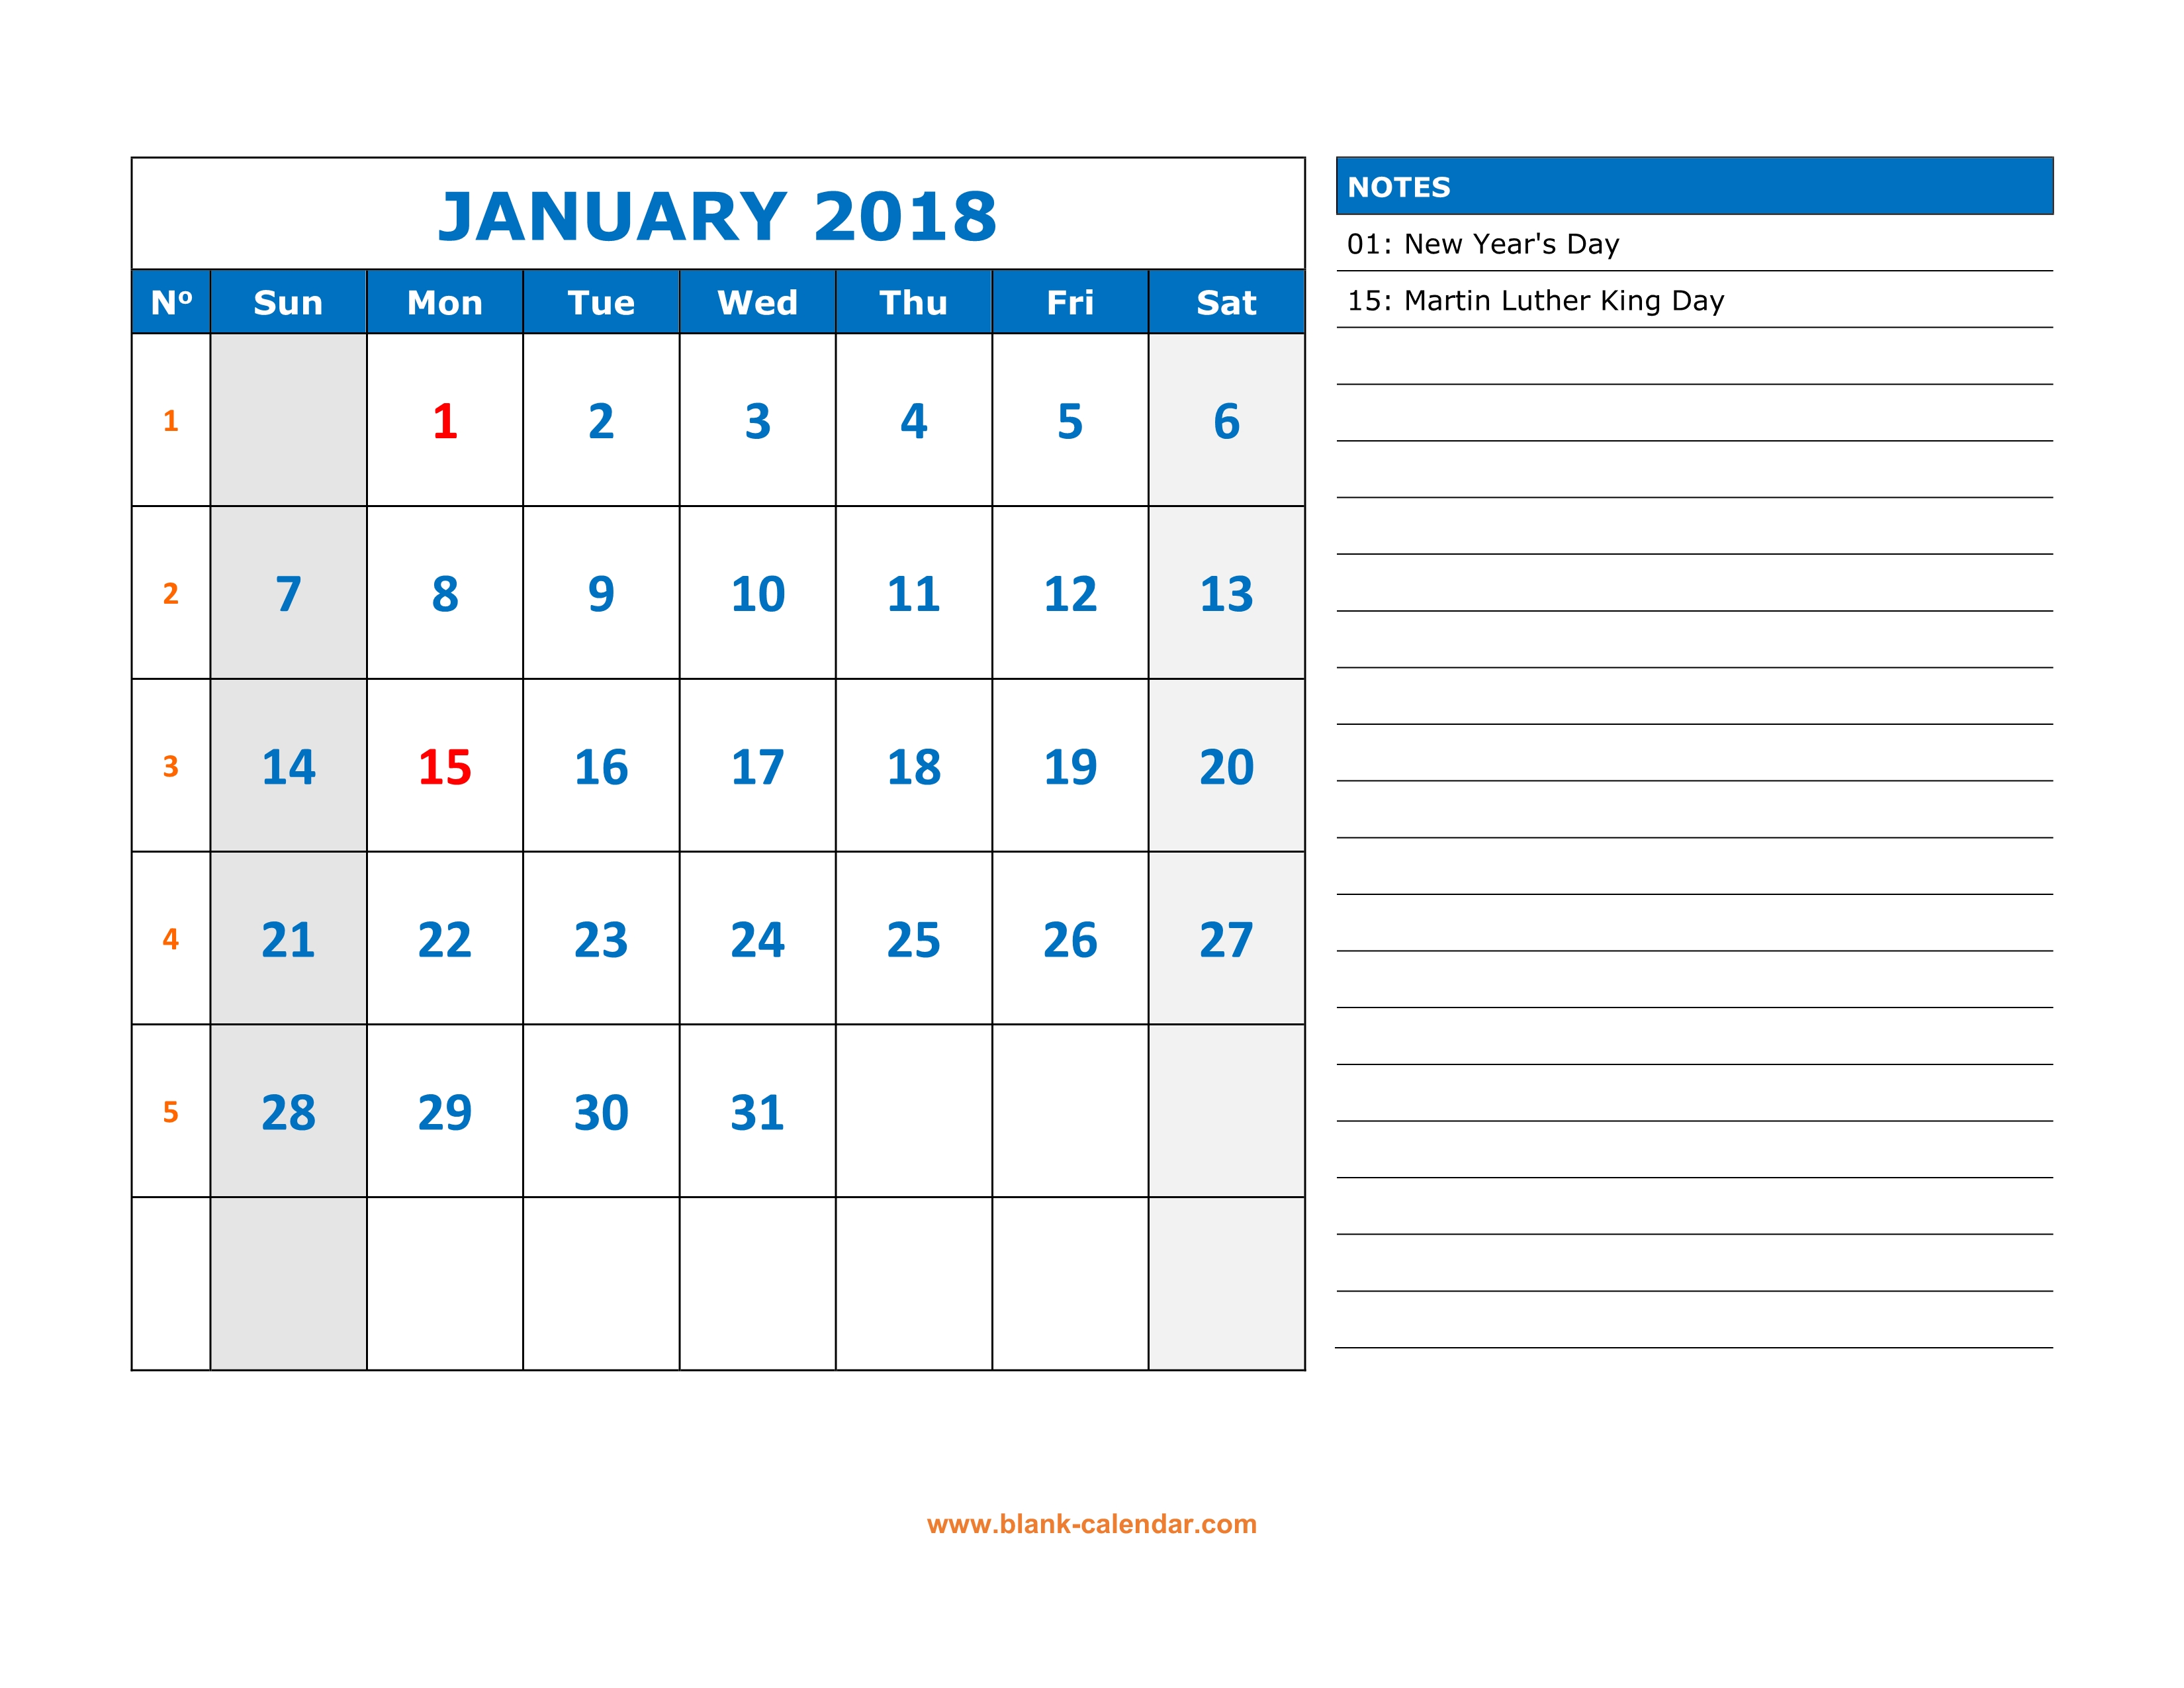 Weekly Calendar With Notes : Free download printable calendar large space for